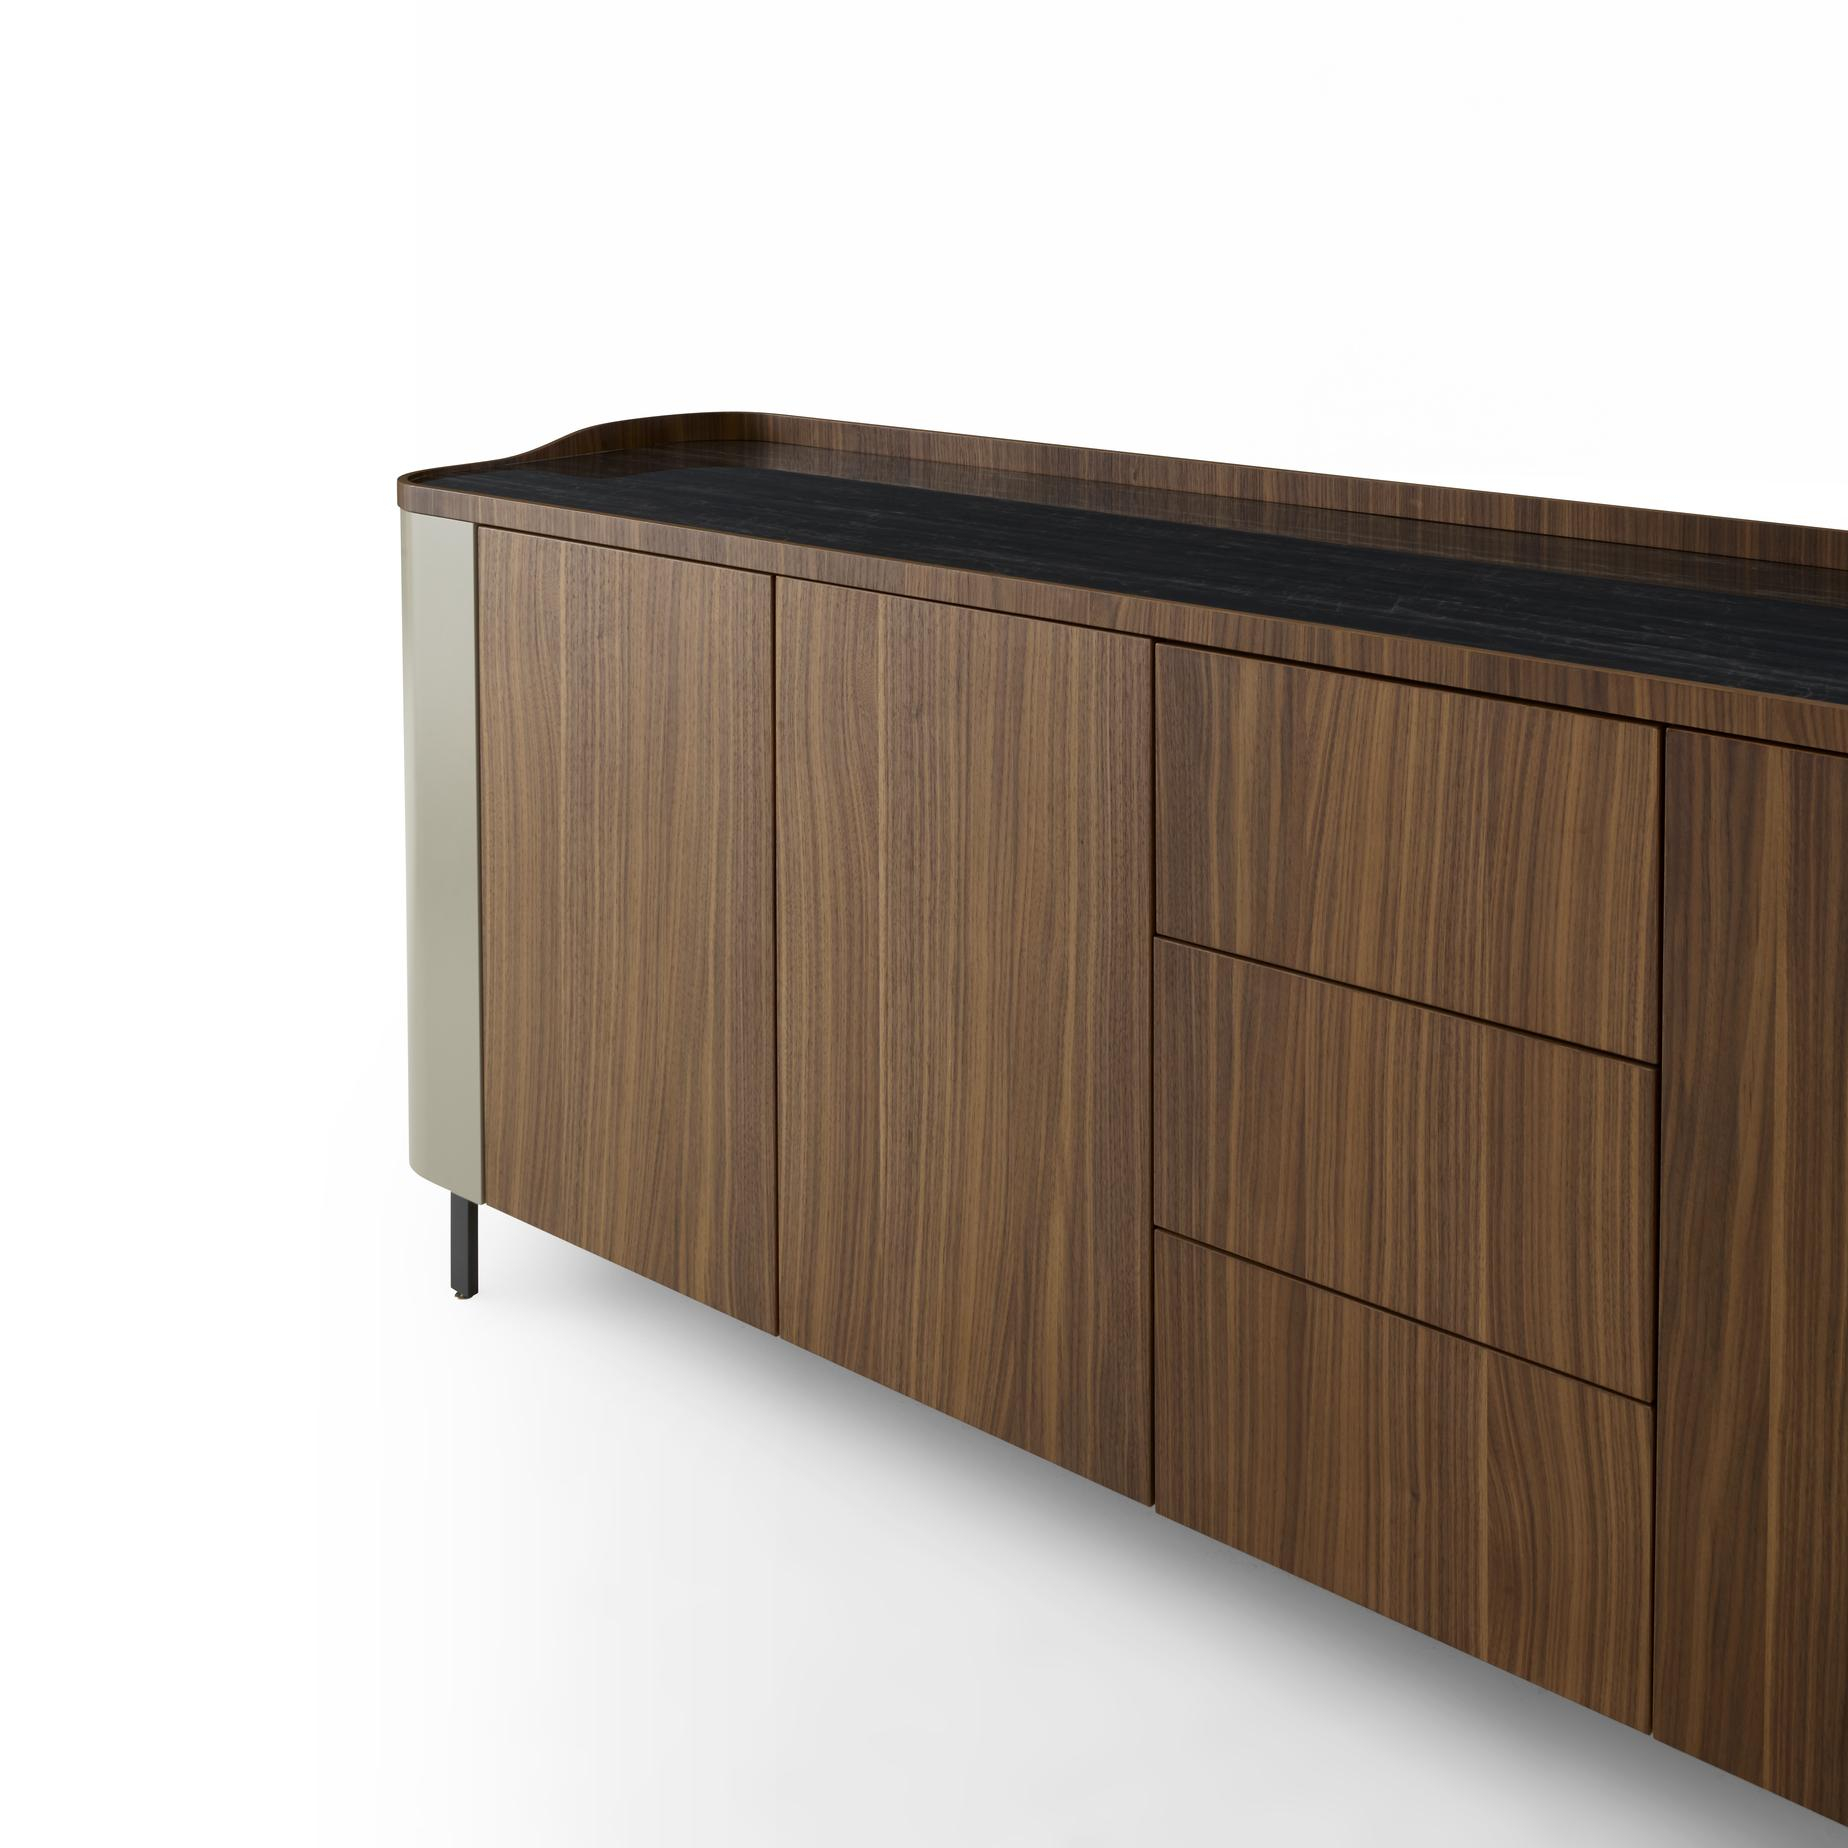 Postmoderne, Sideboards From Designer : Eric Jourdan | Ligne Within Most Up To Date North York Sideboards (#14 of 20)